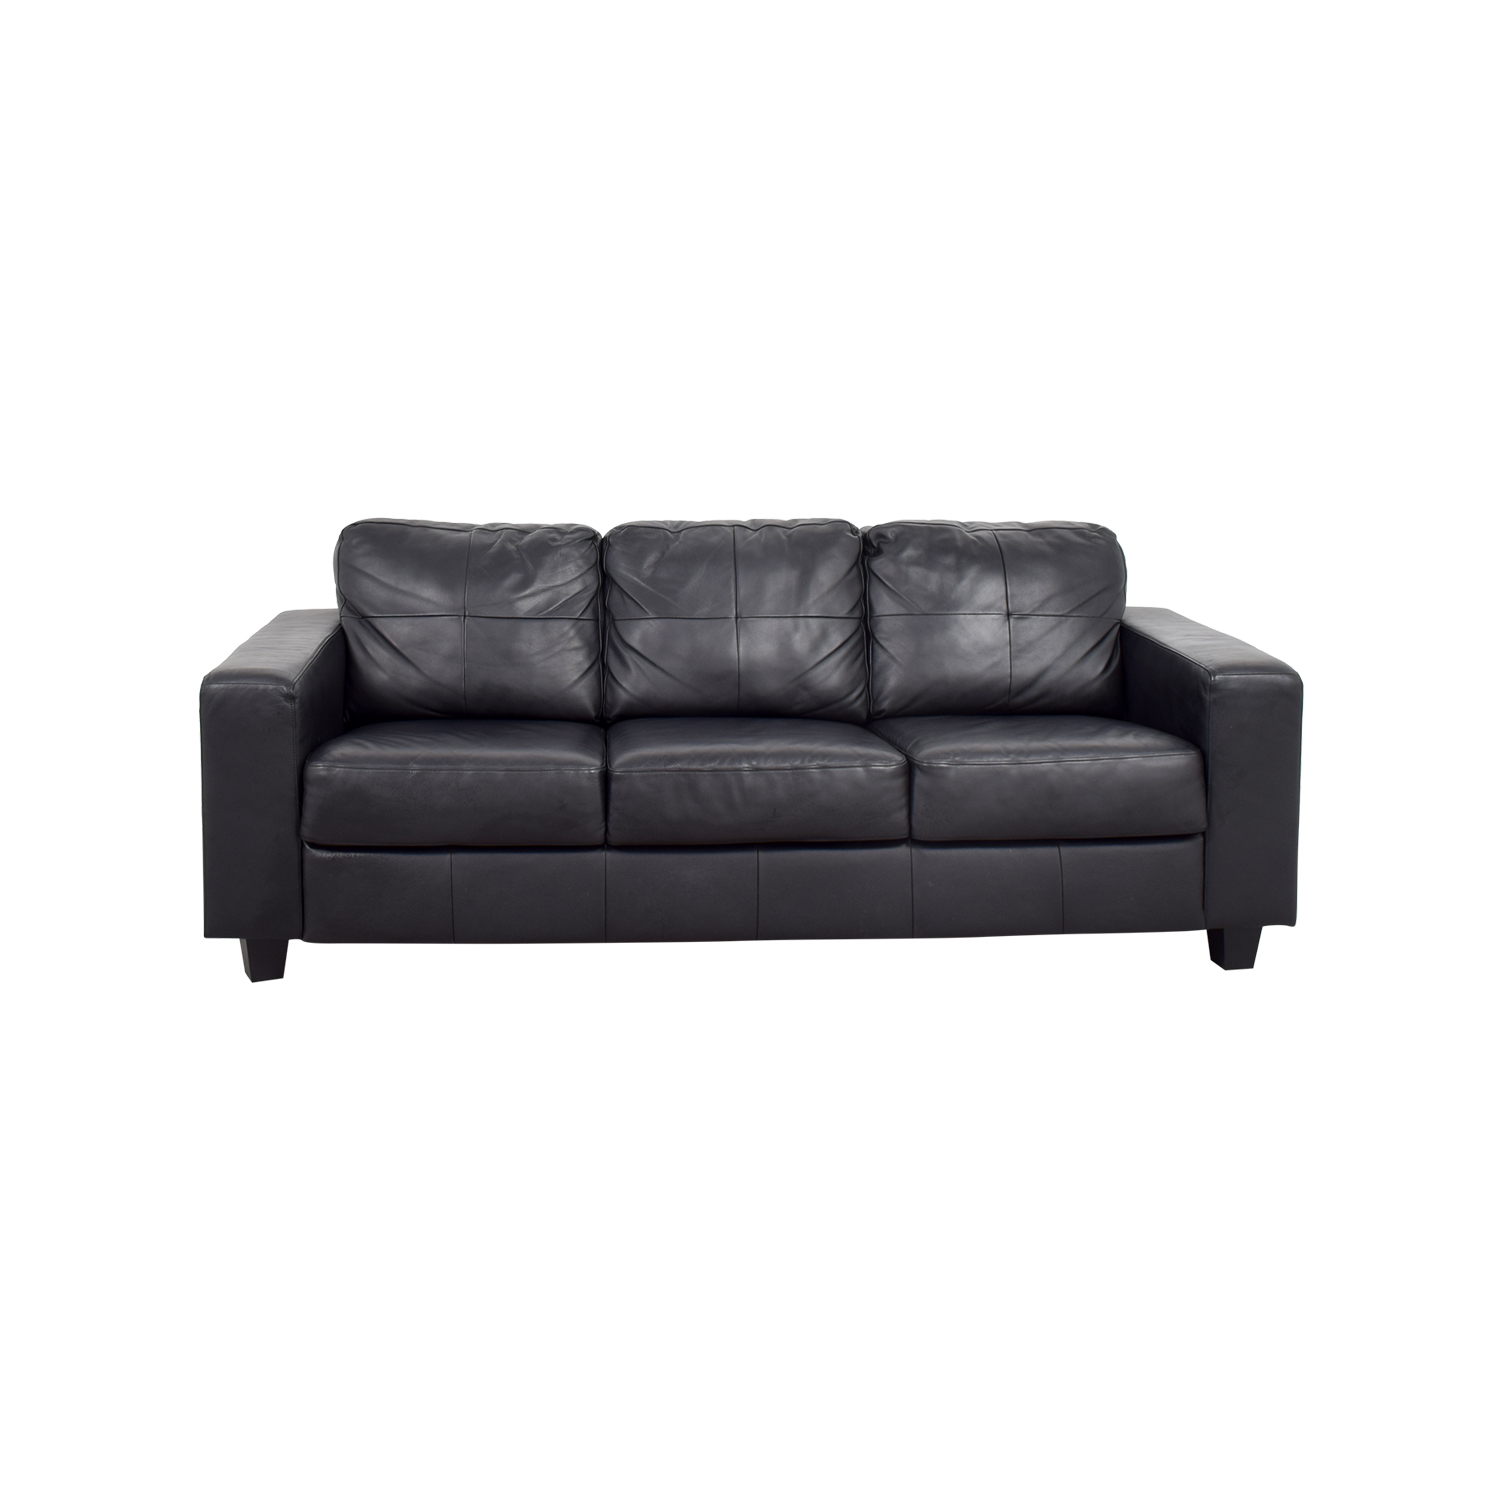 Sofa Ikea 44 Off Ikea Ikea Skogaby Black Leather Sofa Sofas